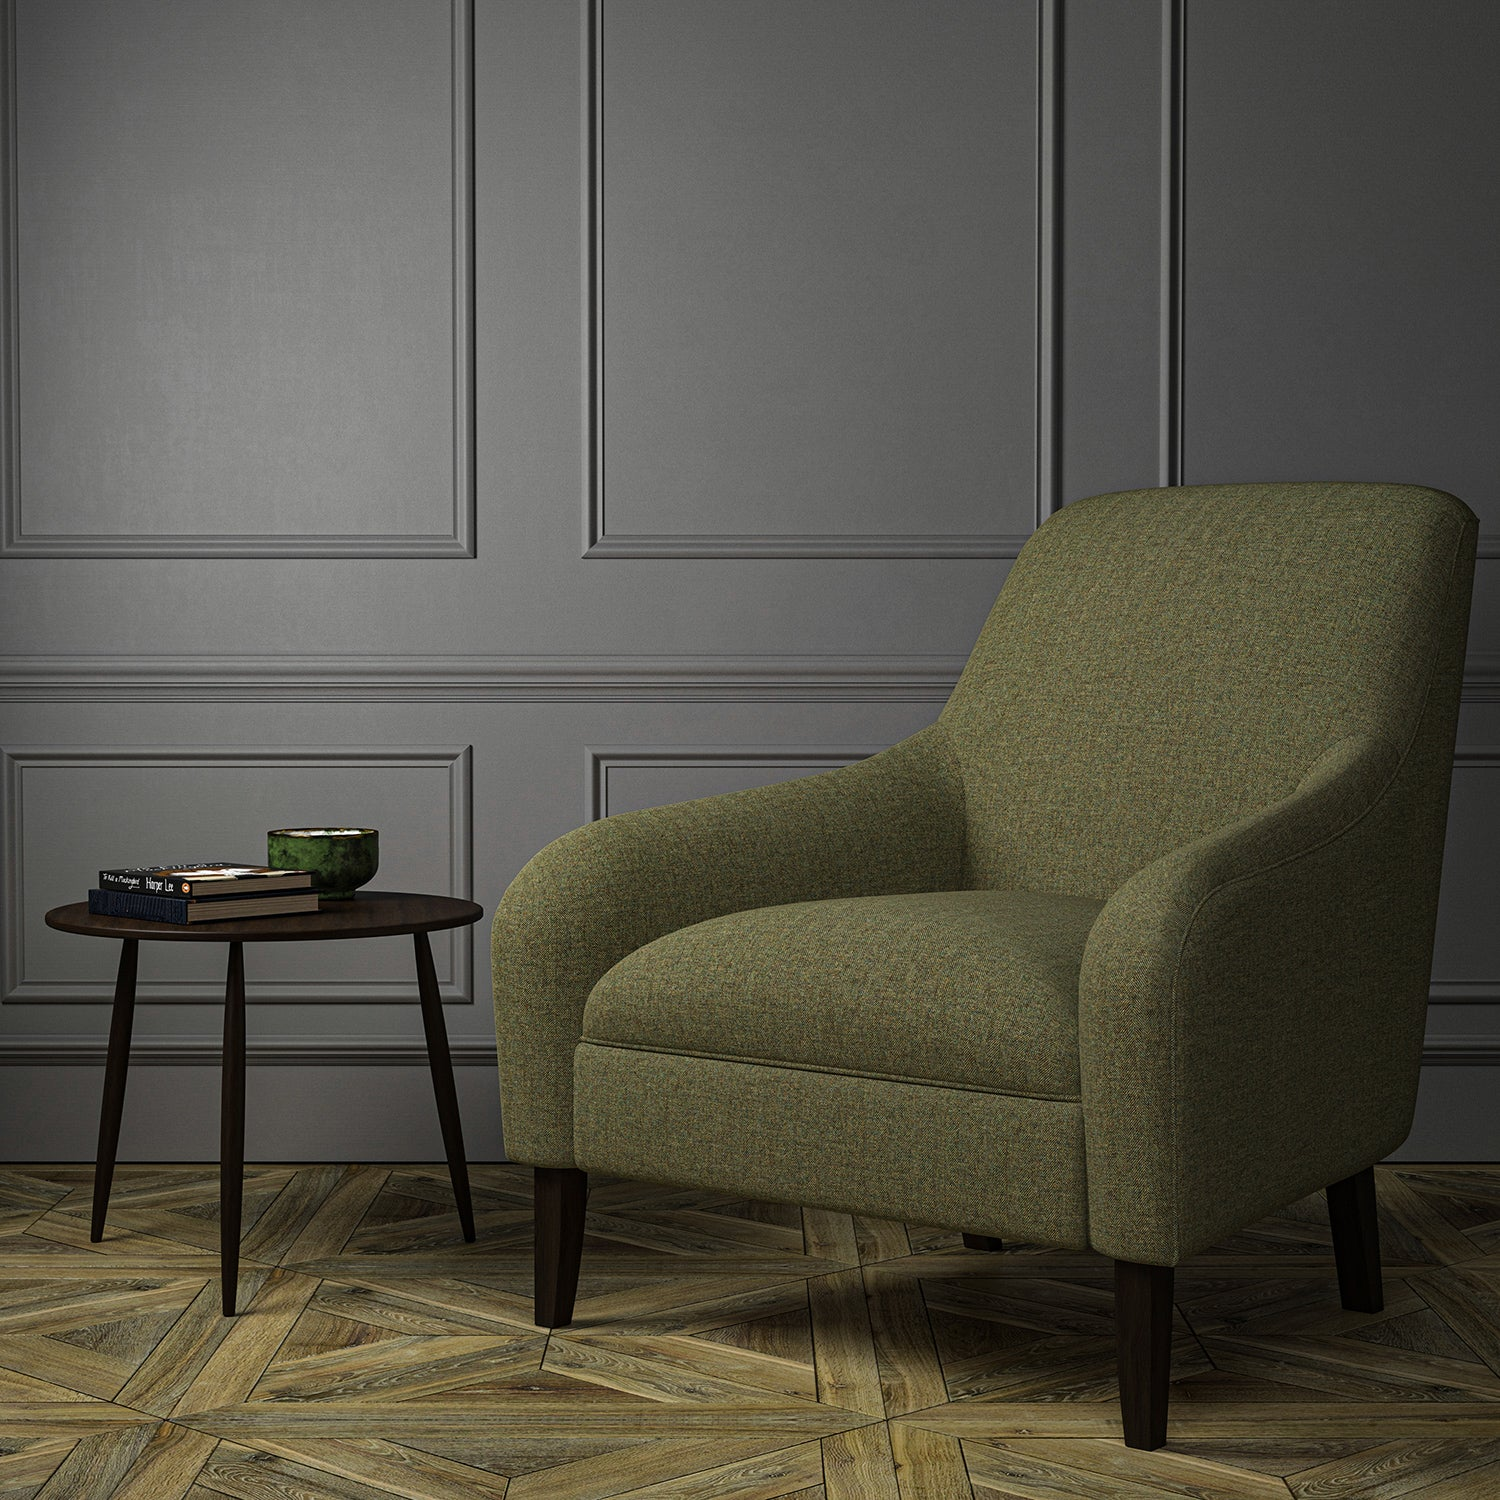 Chair upholstered in a khaki Scottish wool herringbone fabric